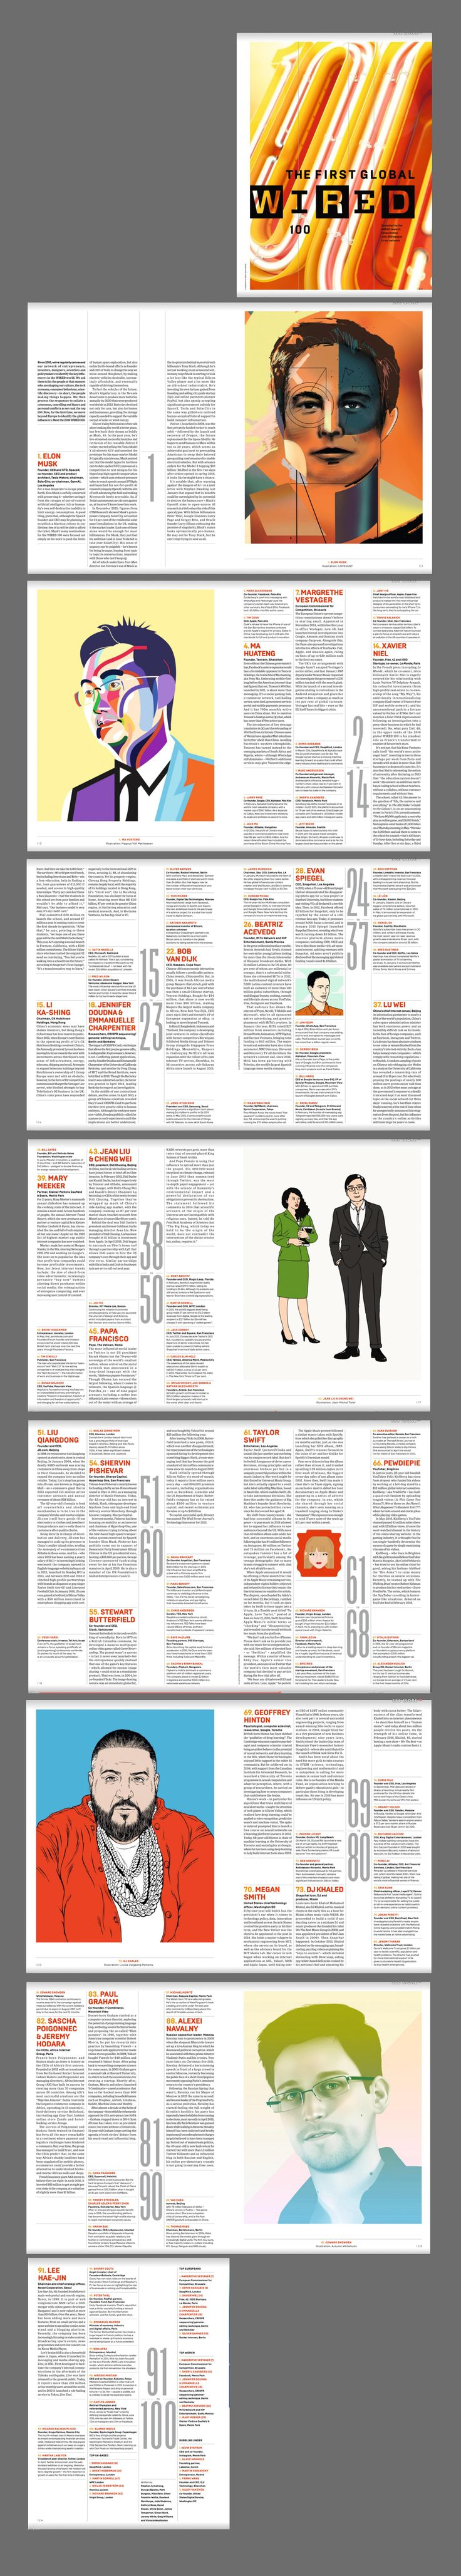 Wired UK magazine Top 100